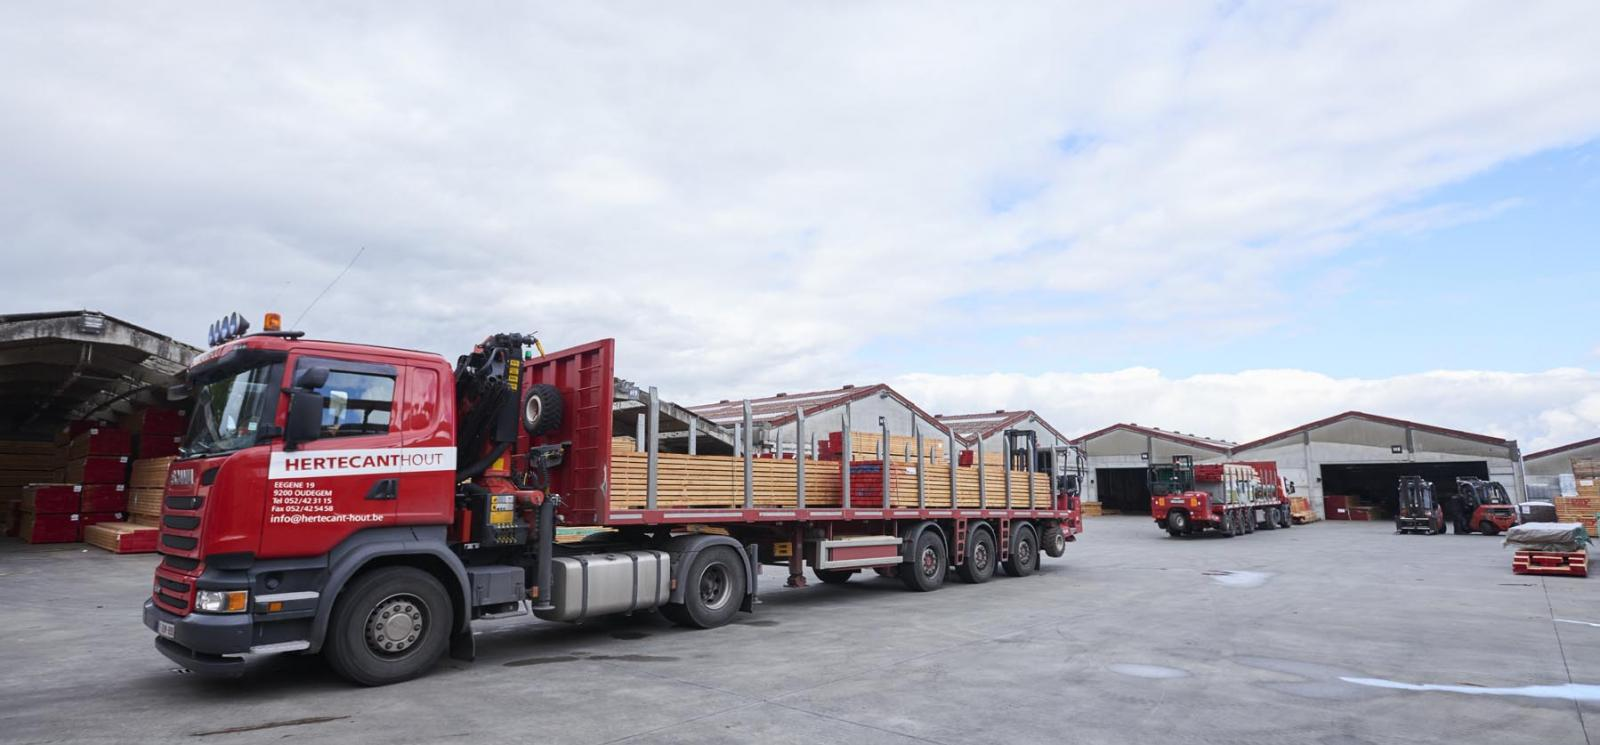 Transport Hertecant Hout